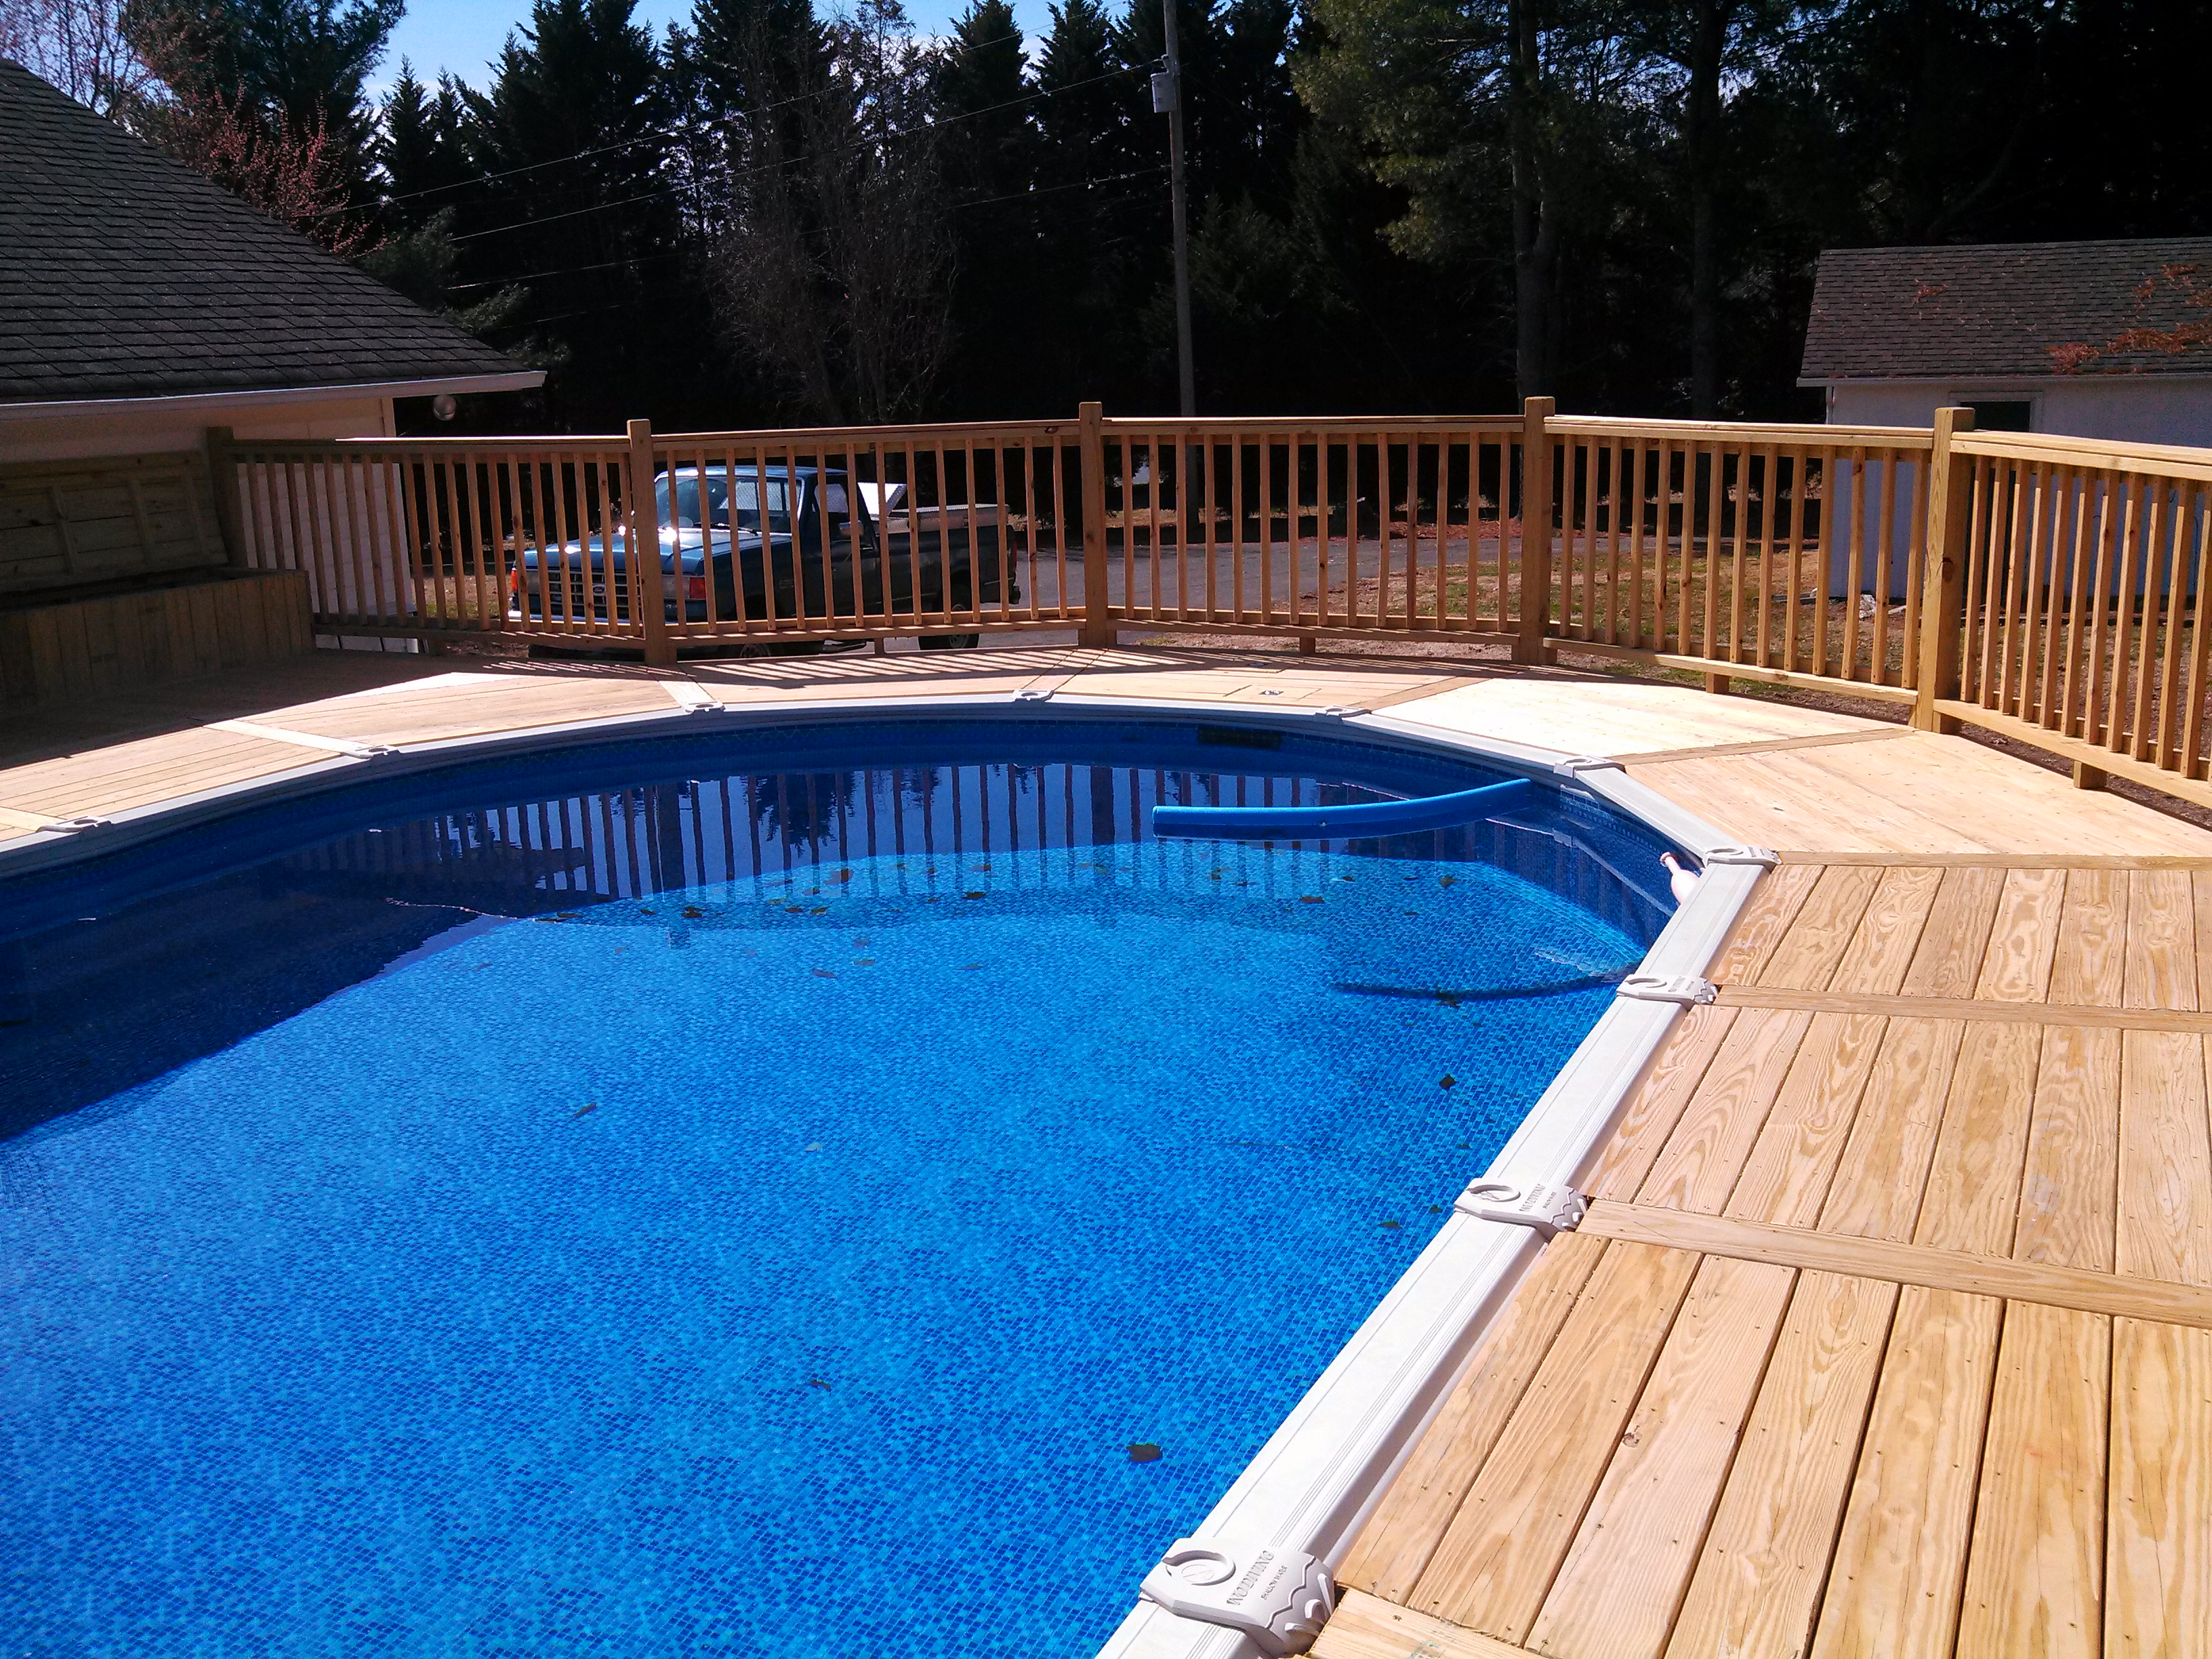 handrails and decking pattern around the swimming pool